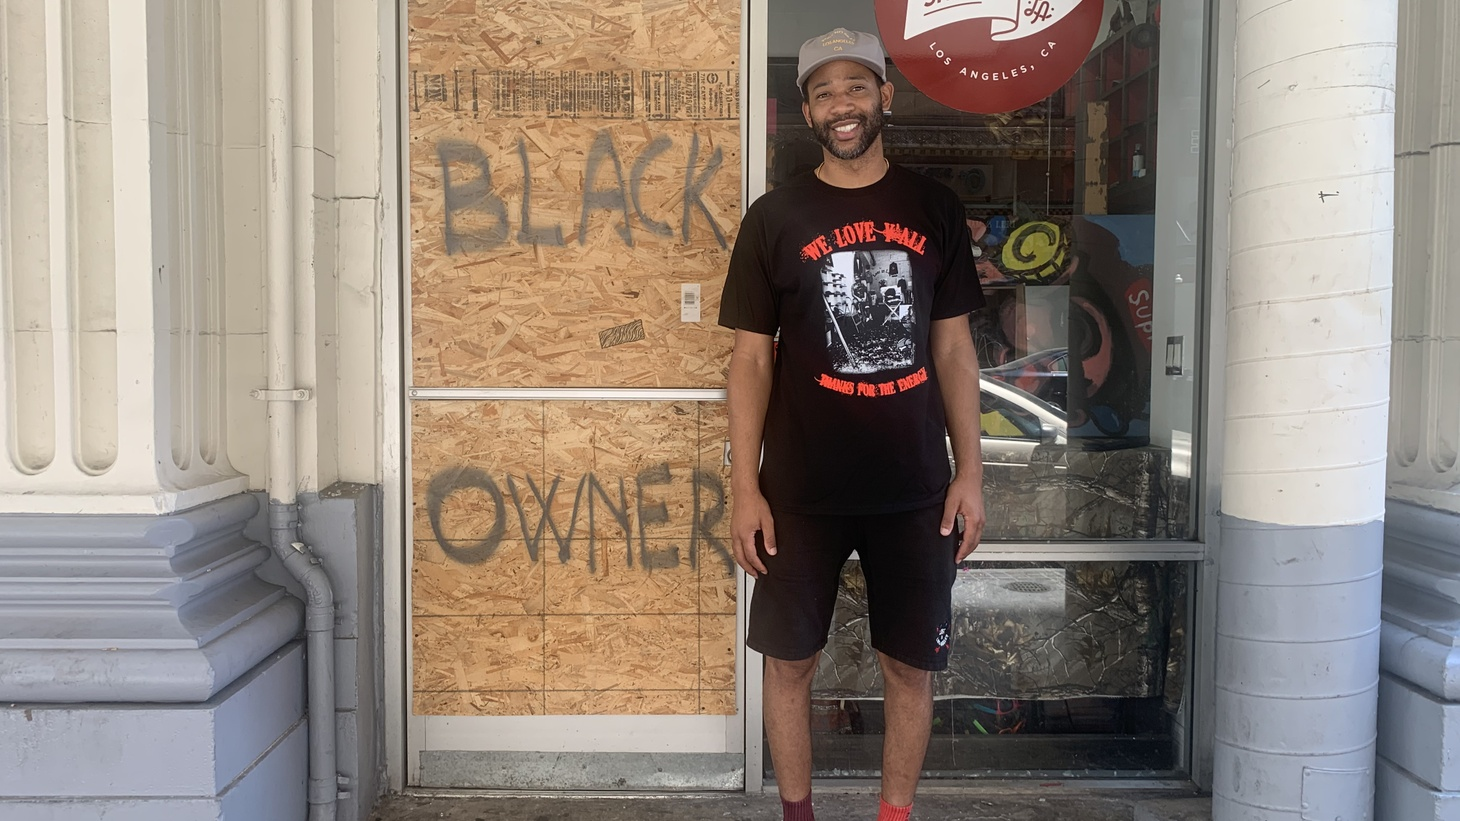 Someone put up a sign stating that Joel Stallworth was a black owner after his shop, The Small Shop LA, was looted.